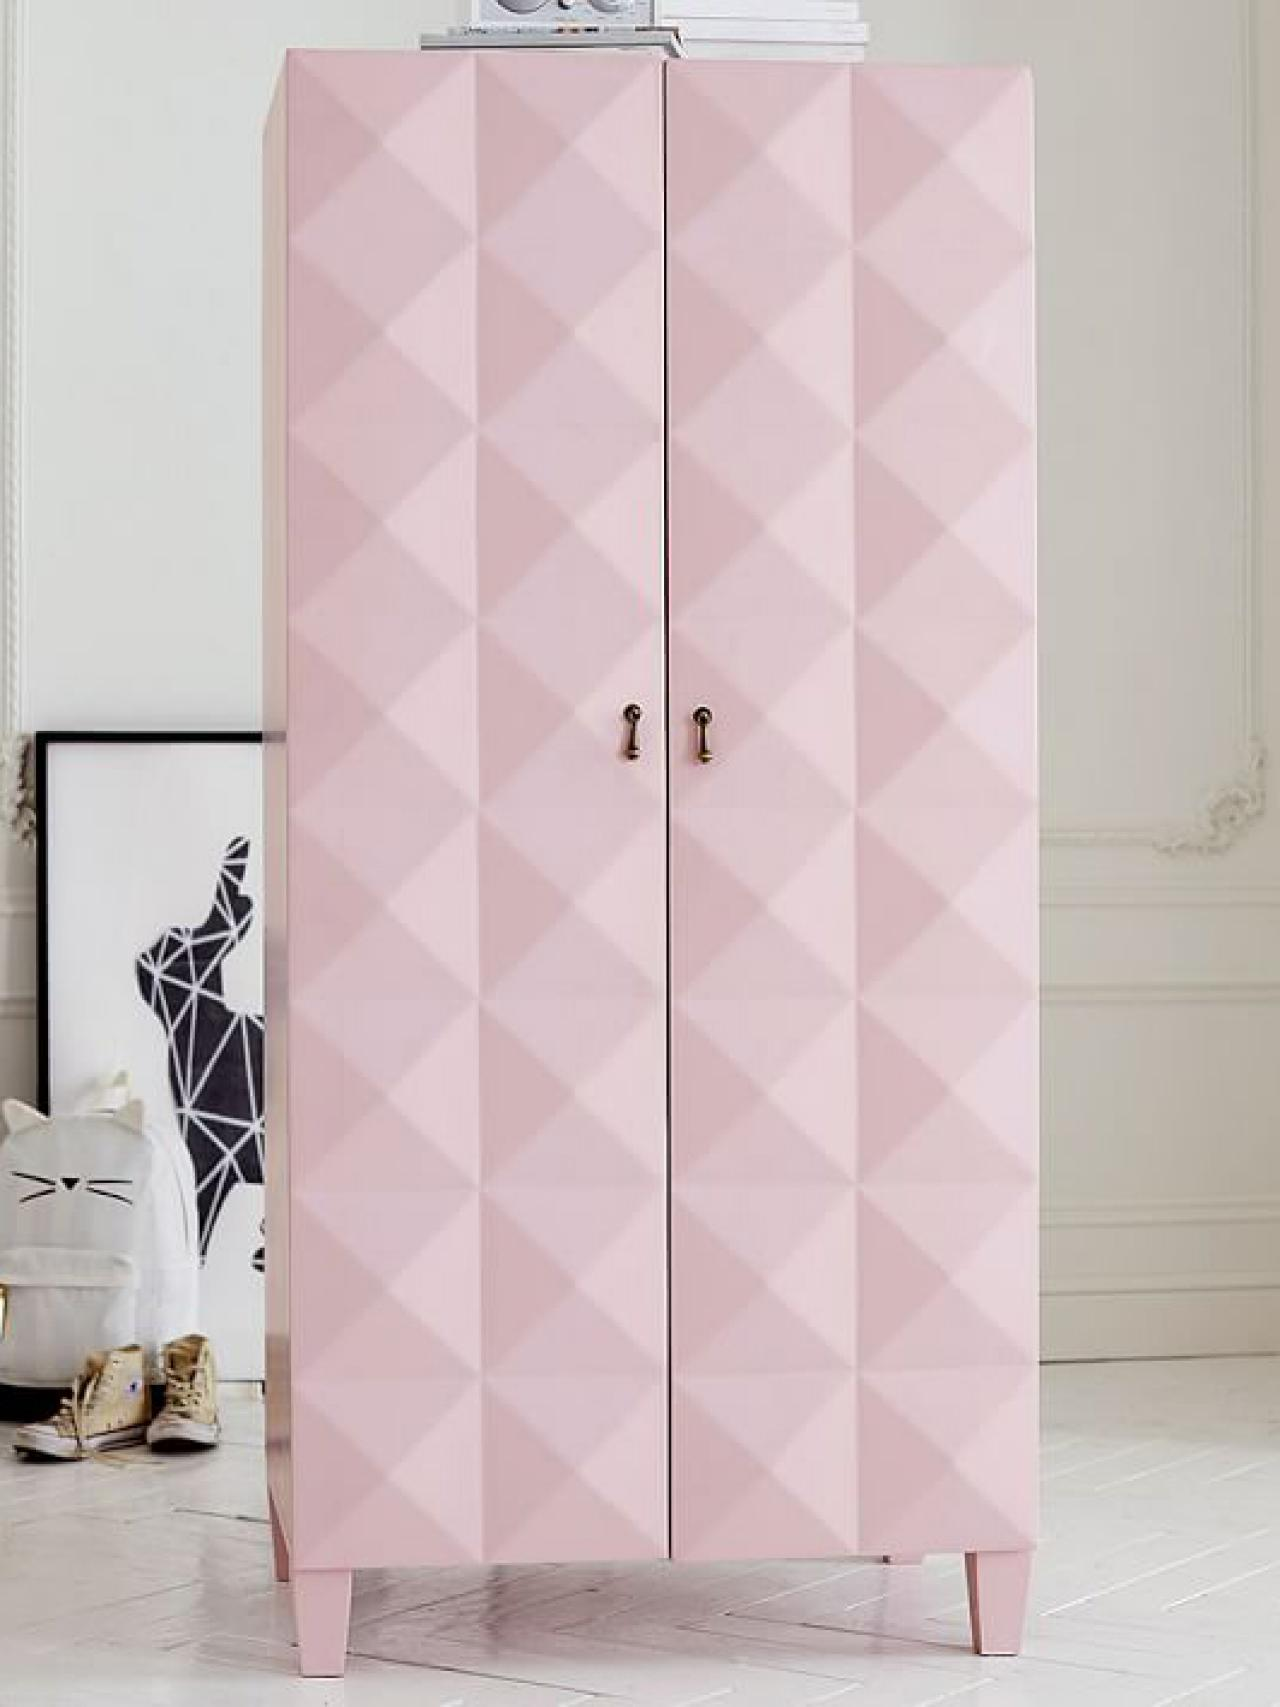 Millennial Pink Decor For Every Room In The House Hgtv S